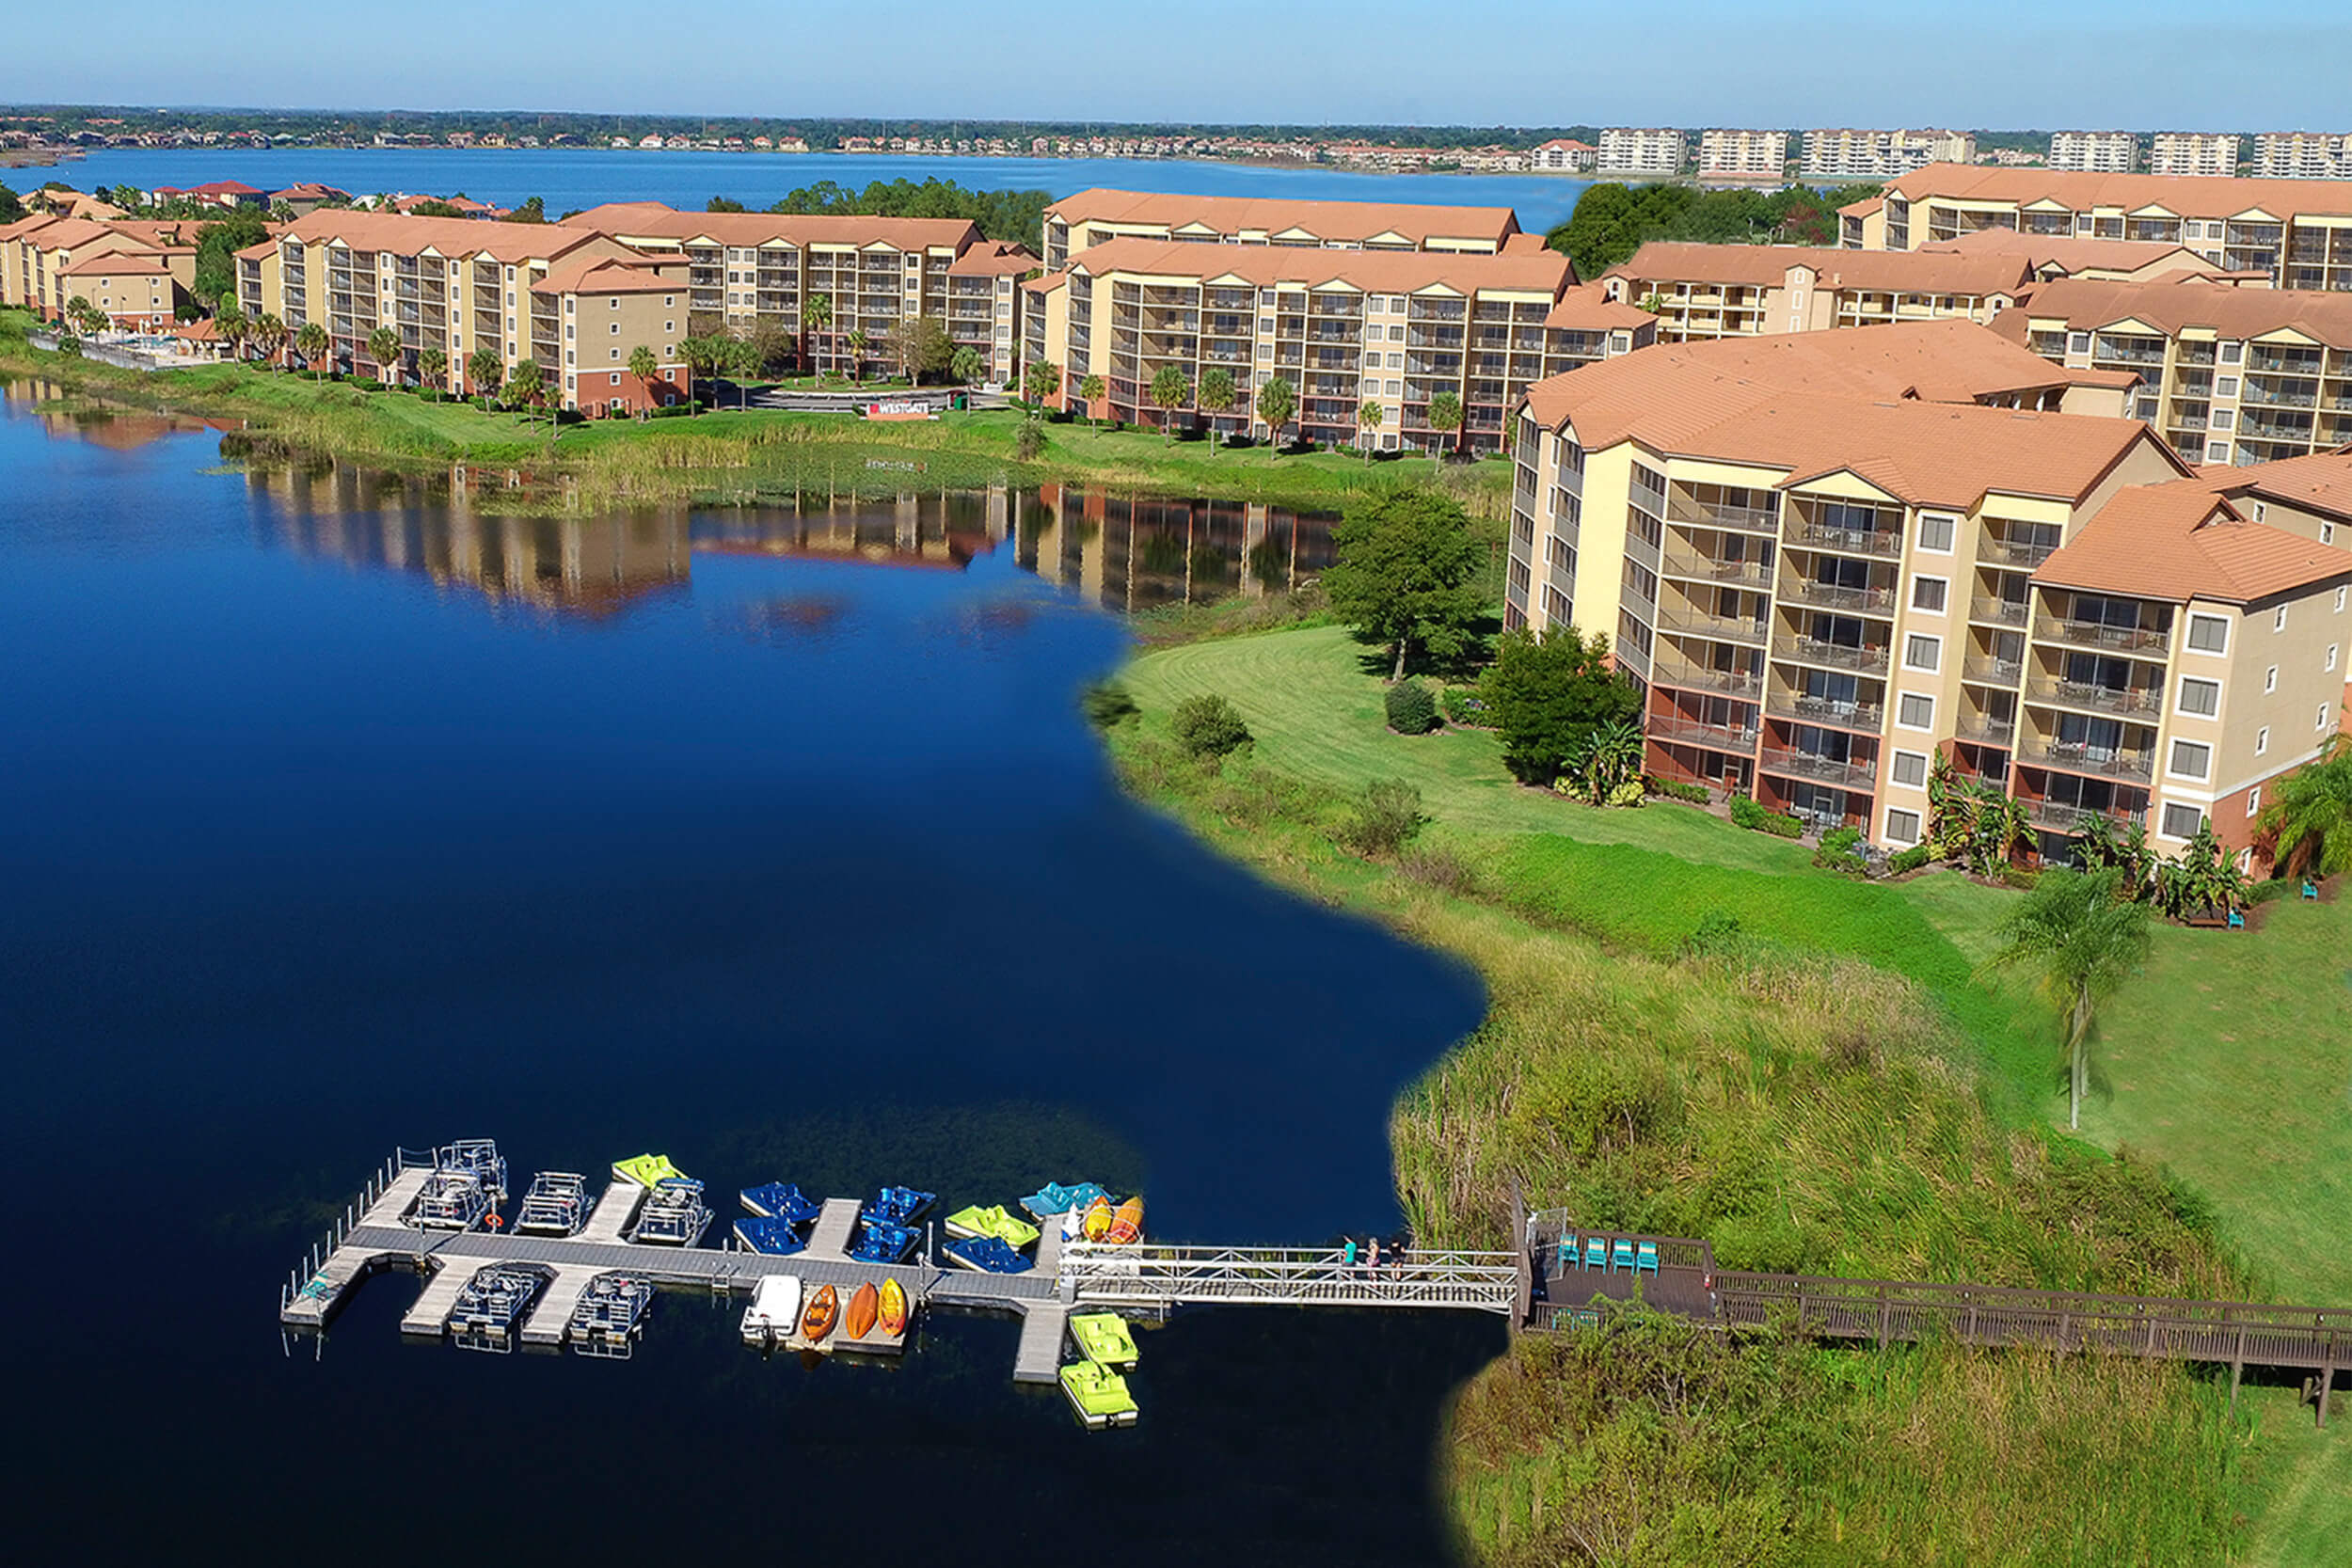 Aerial view of Westgate Lakes Resort & Spa - Westgate Resorts